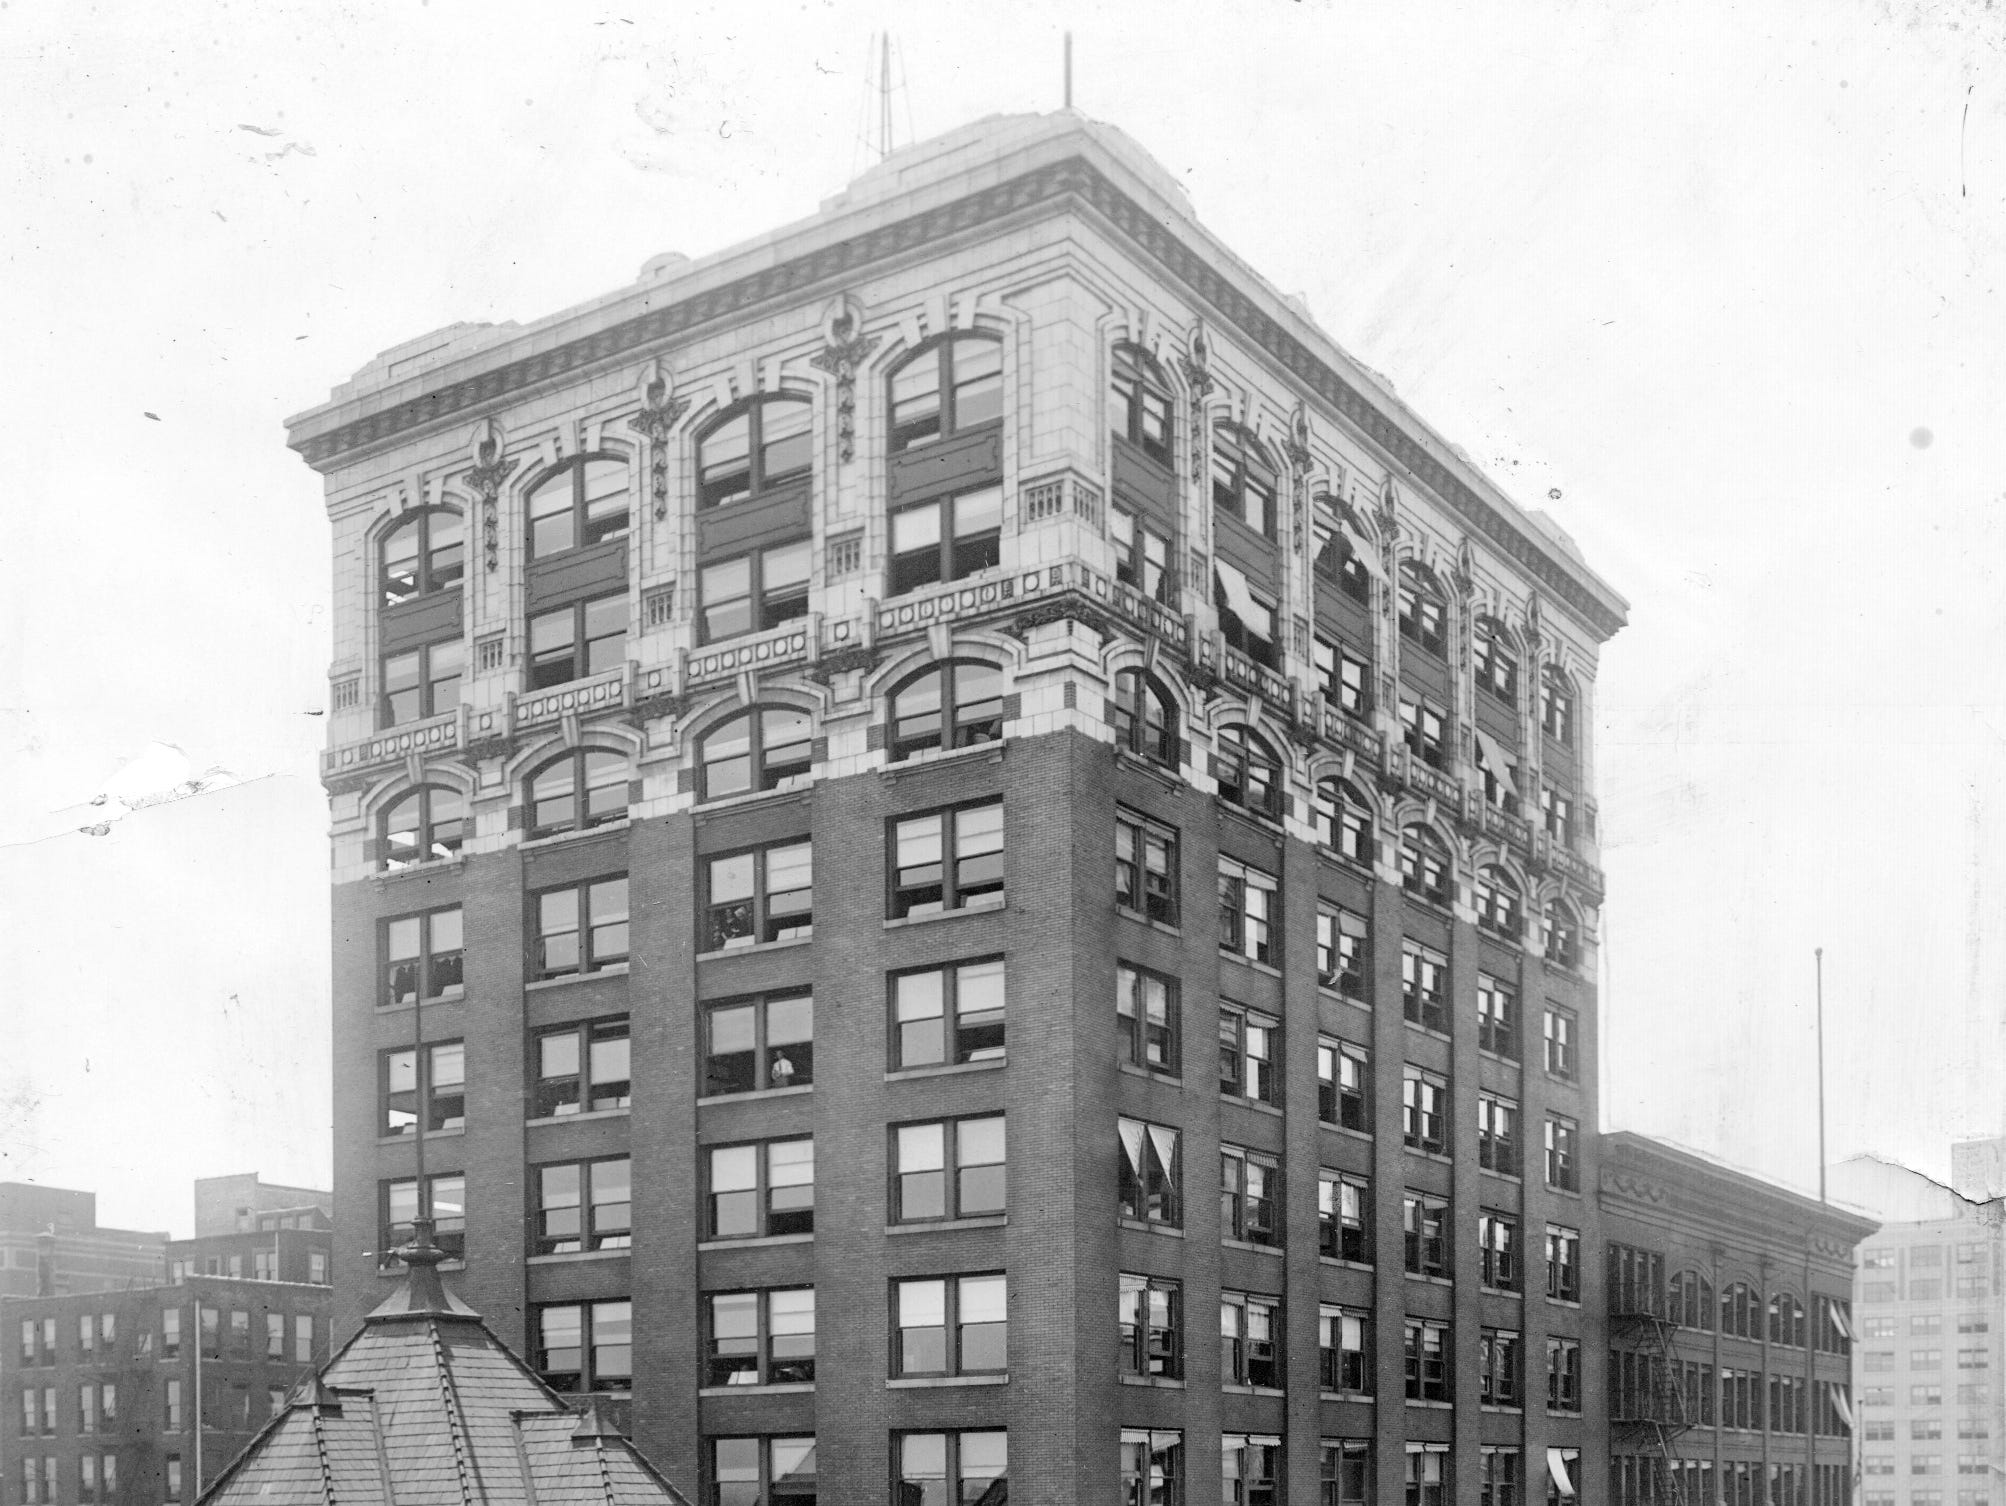 15-story Lemke Annex (later the Consolidated Building) with the marquee for Keith's Theater in 1922. The theater was located behind the building off alley known as Wabash St.